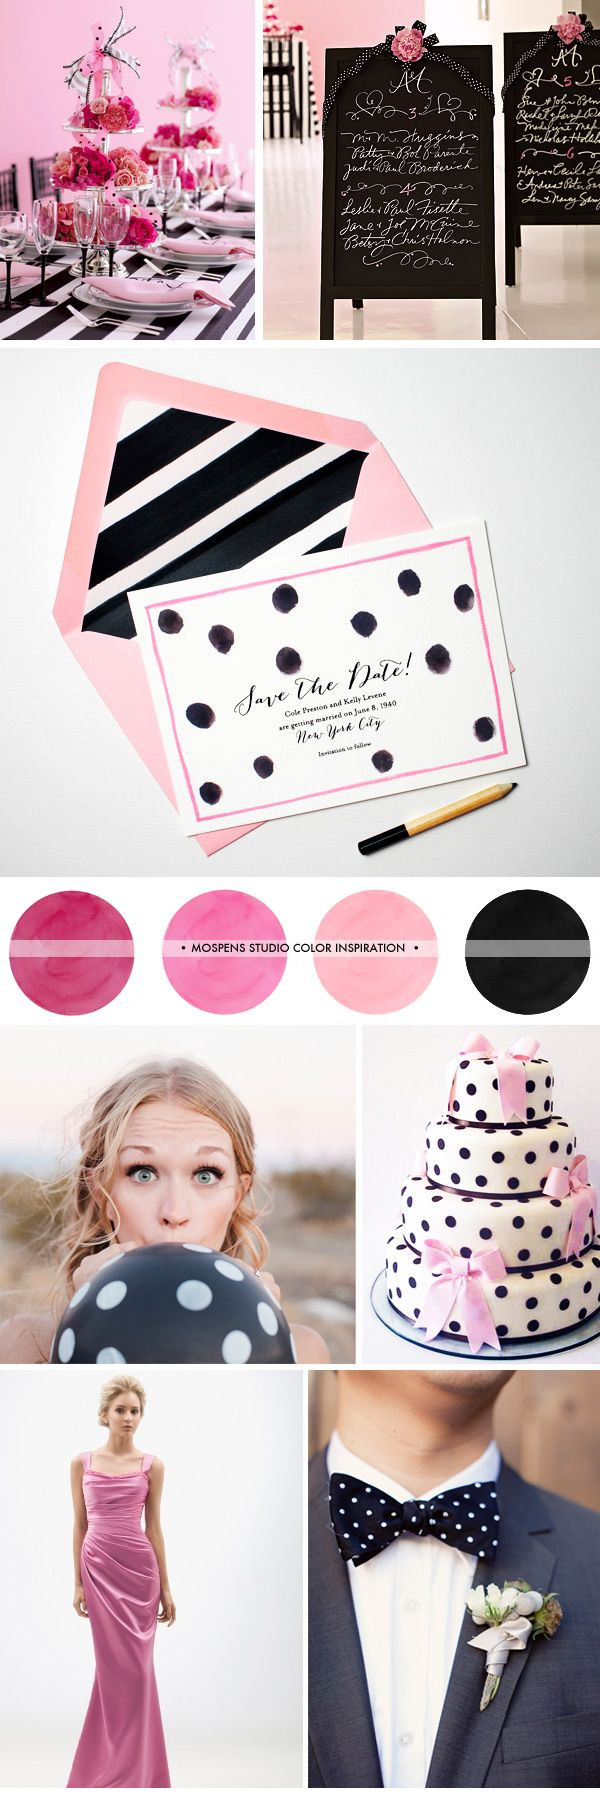 Pink, Black and White Wedding Ideas with Polka-Dots | Mospens Studio ...